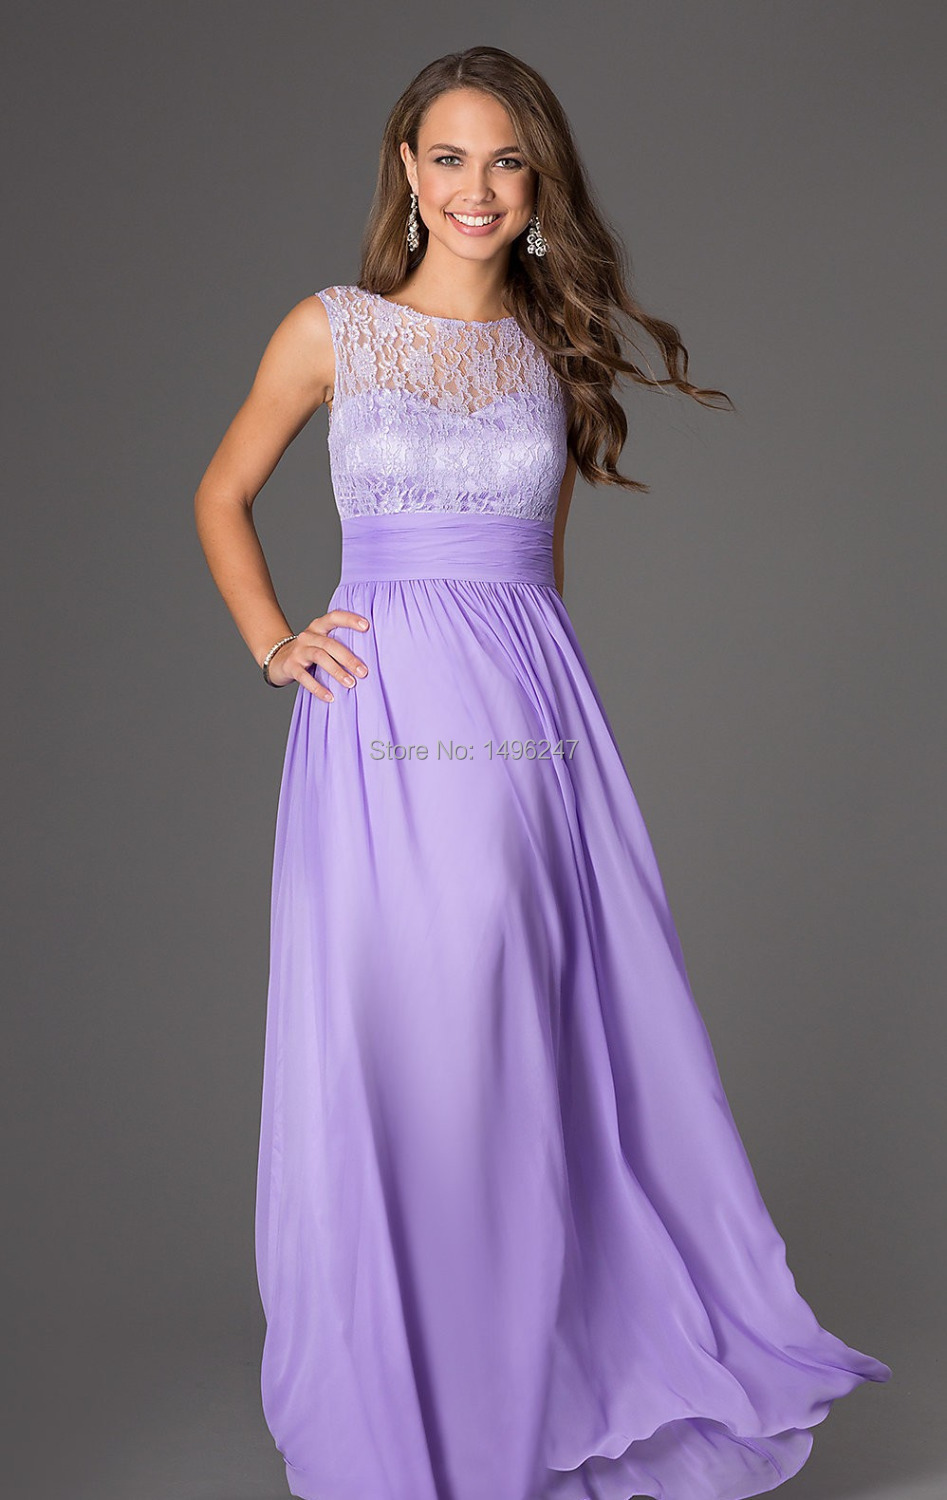 Compare prices on lavender chiffon bridesmaid dresses online fashionable vintage lavender lace a line long bridesmaid dresses open back see through wedding party gown ombrellifo Choice Image